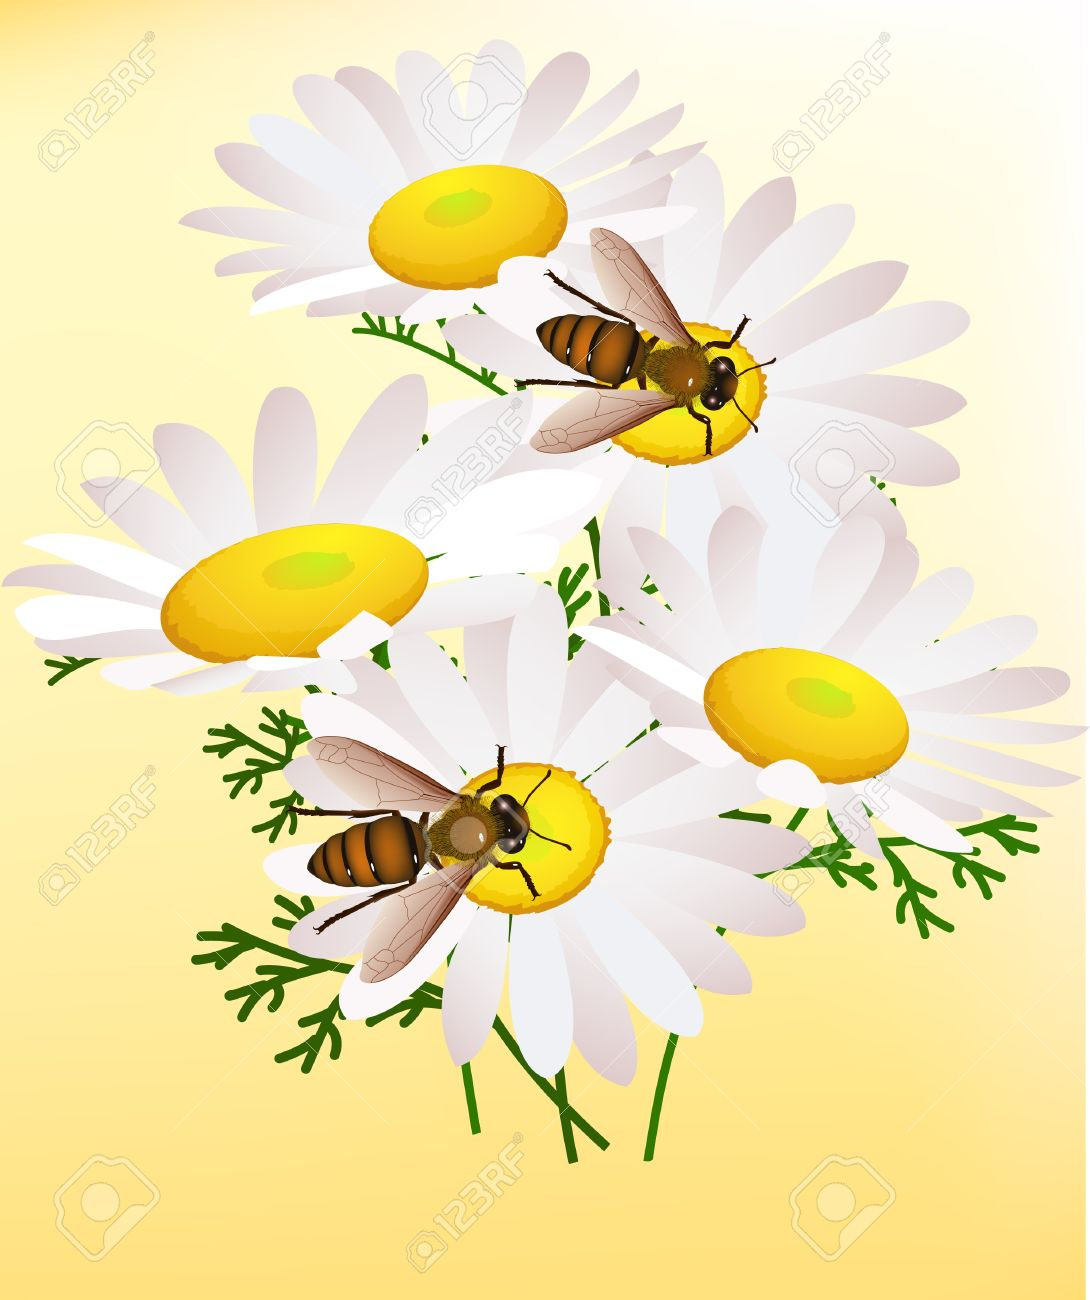 Background, Bee, Busy, Buzz, Colorful, Composition, Concept.